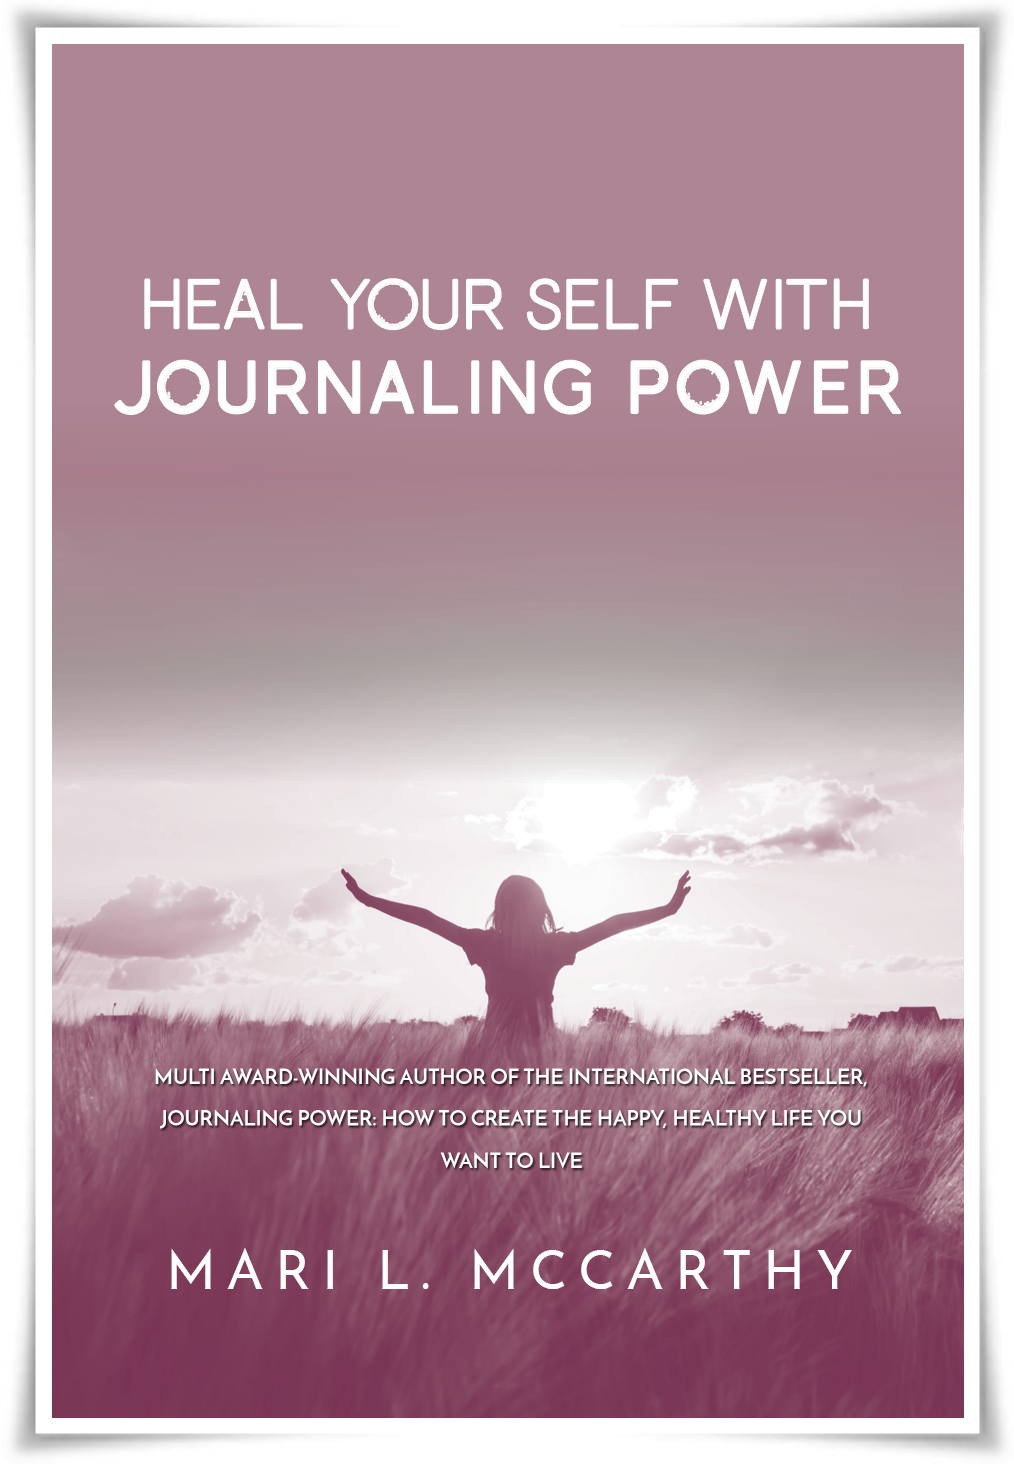 HealYourSelf Cover